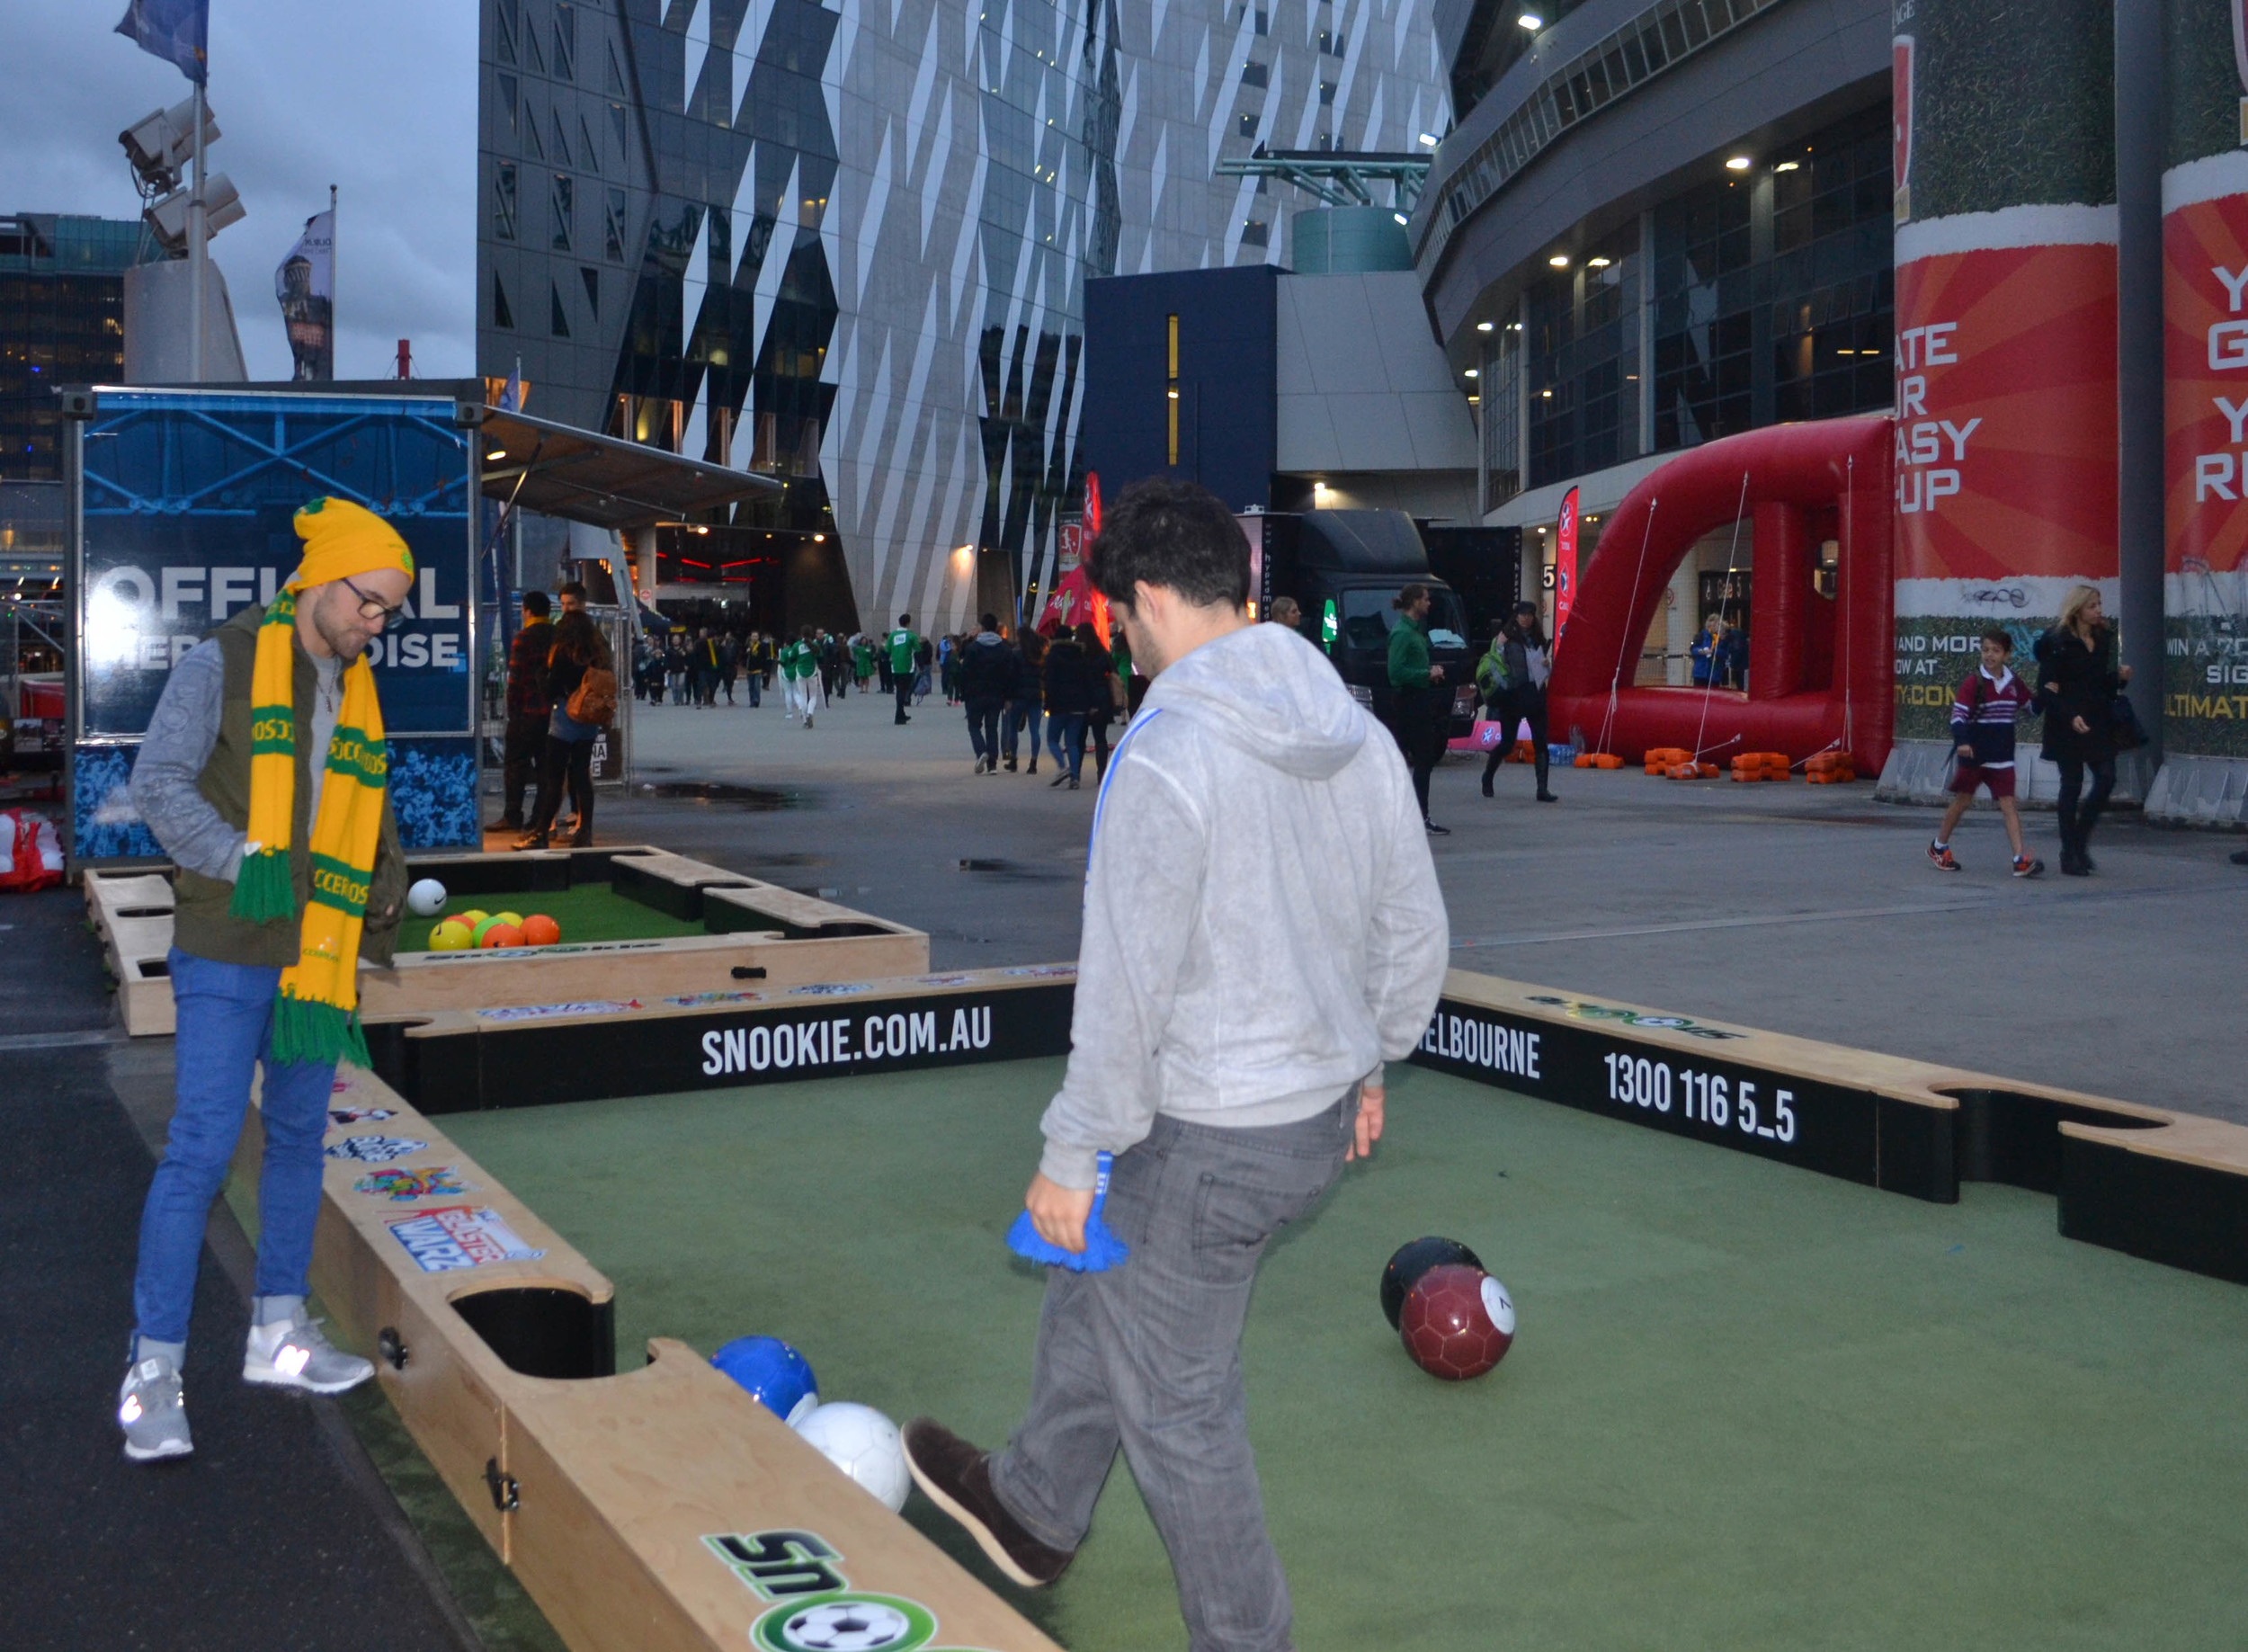 Soccer Pool Table featured pre-game at Etihad Stadium in Melbourne.